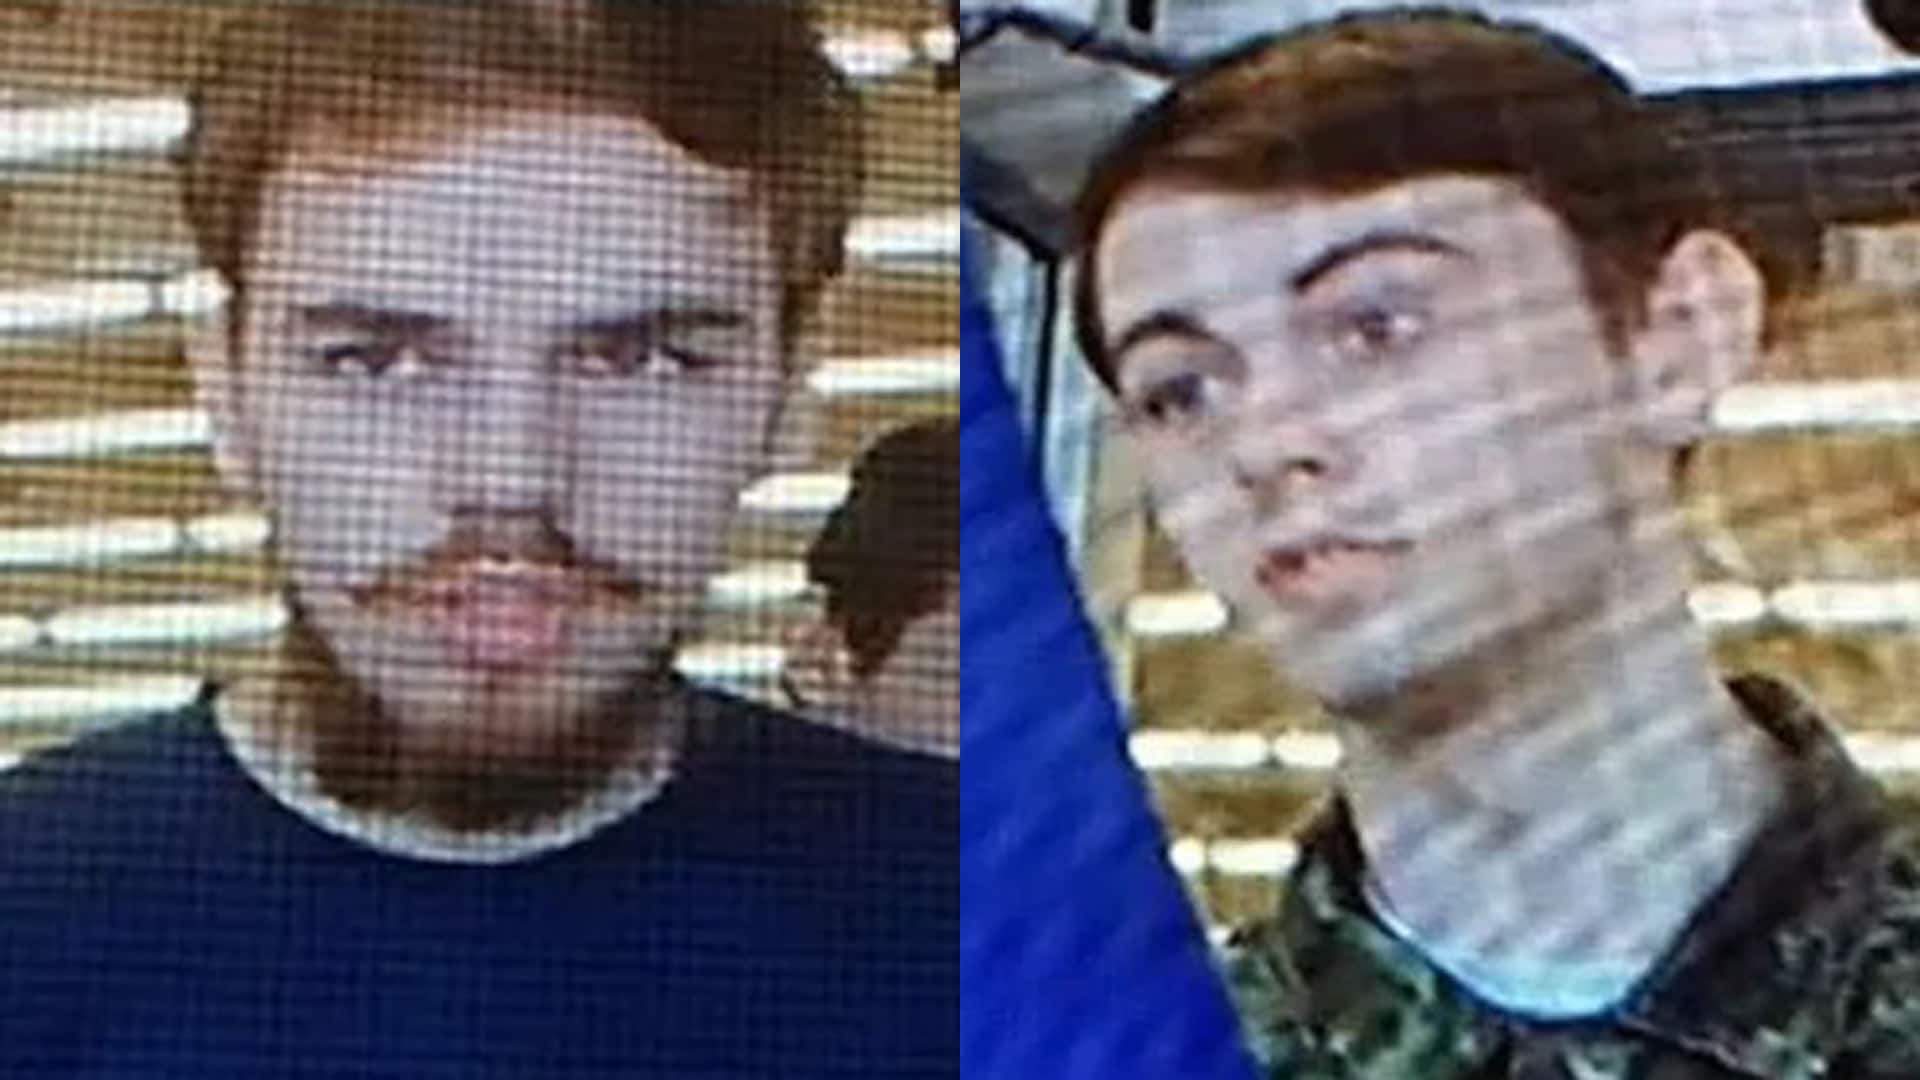 Who are Kam McLeod and Bryer Schmegelsky, subjects of Canada